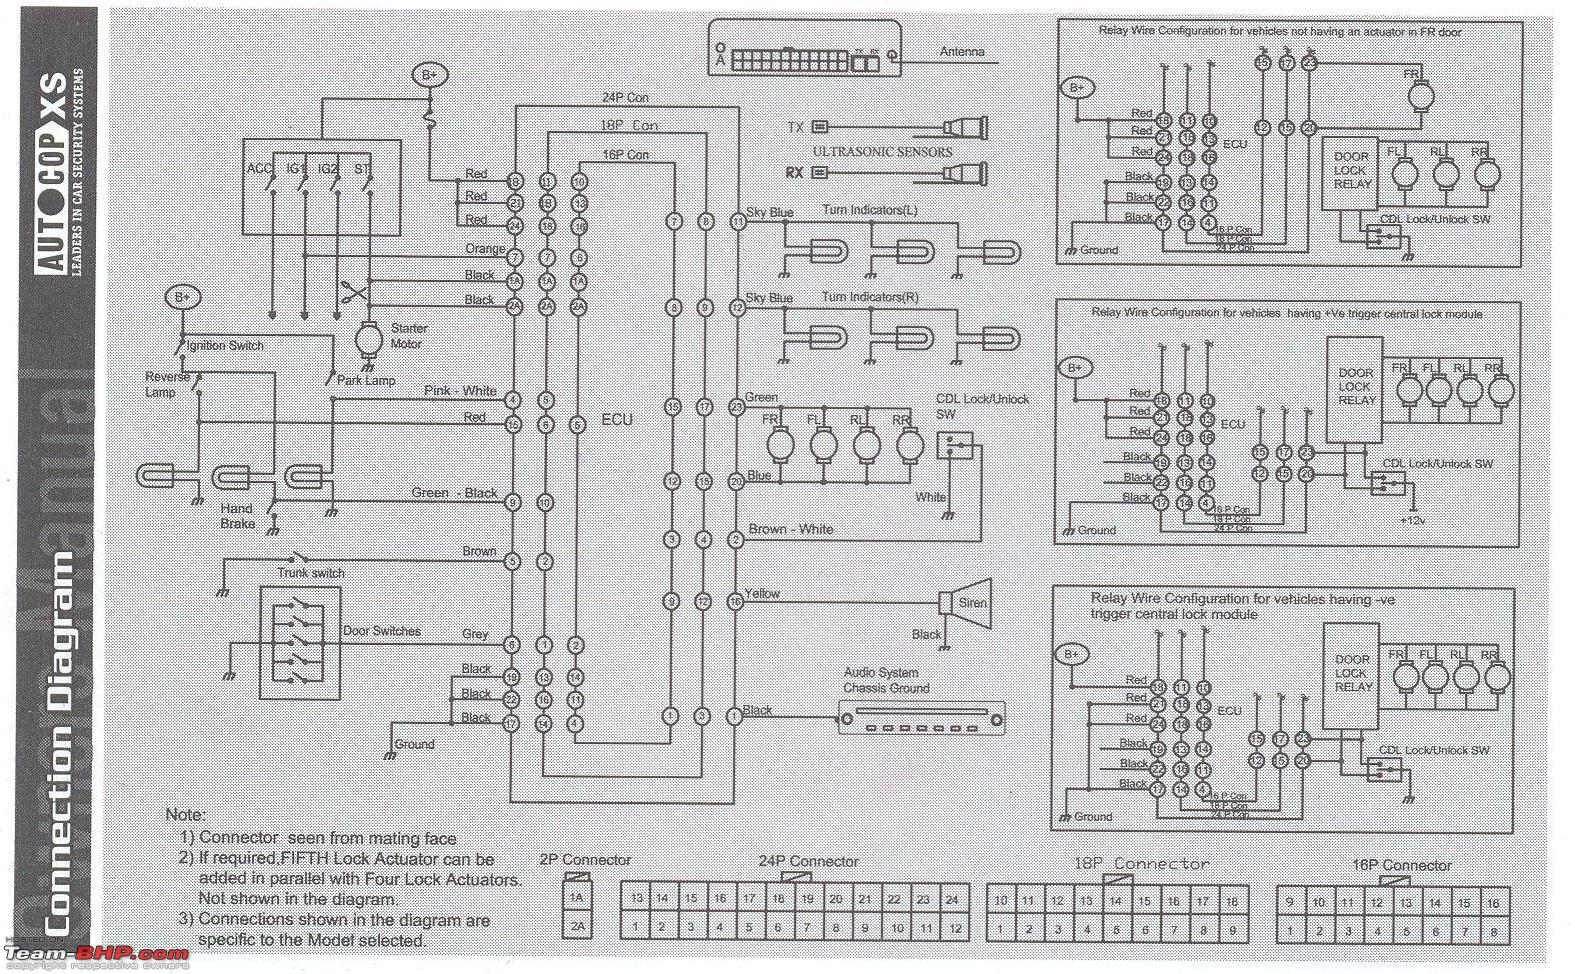 880602d1328028546 autocop xs manual wiring diagram image 5 autocop xs manual wiring diagram team bhp 2004 ford ikon starter wiring diagram at edmiracle.co